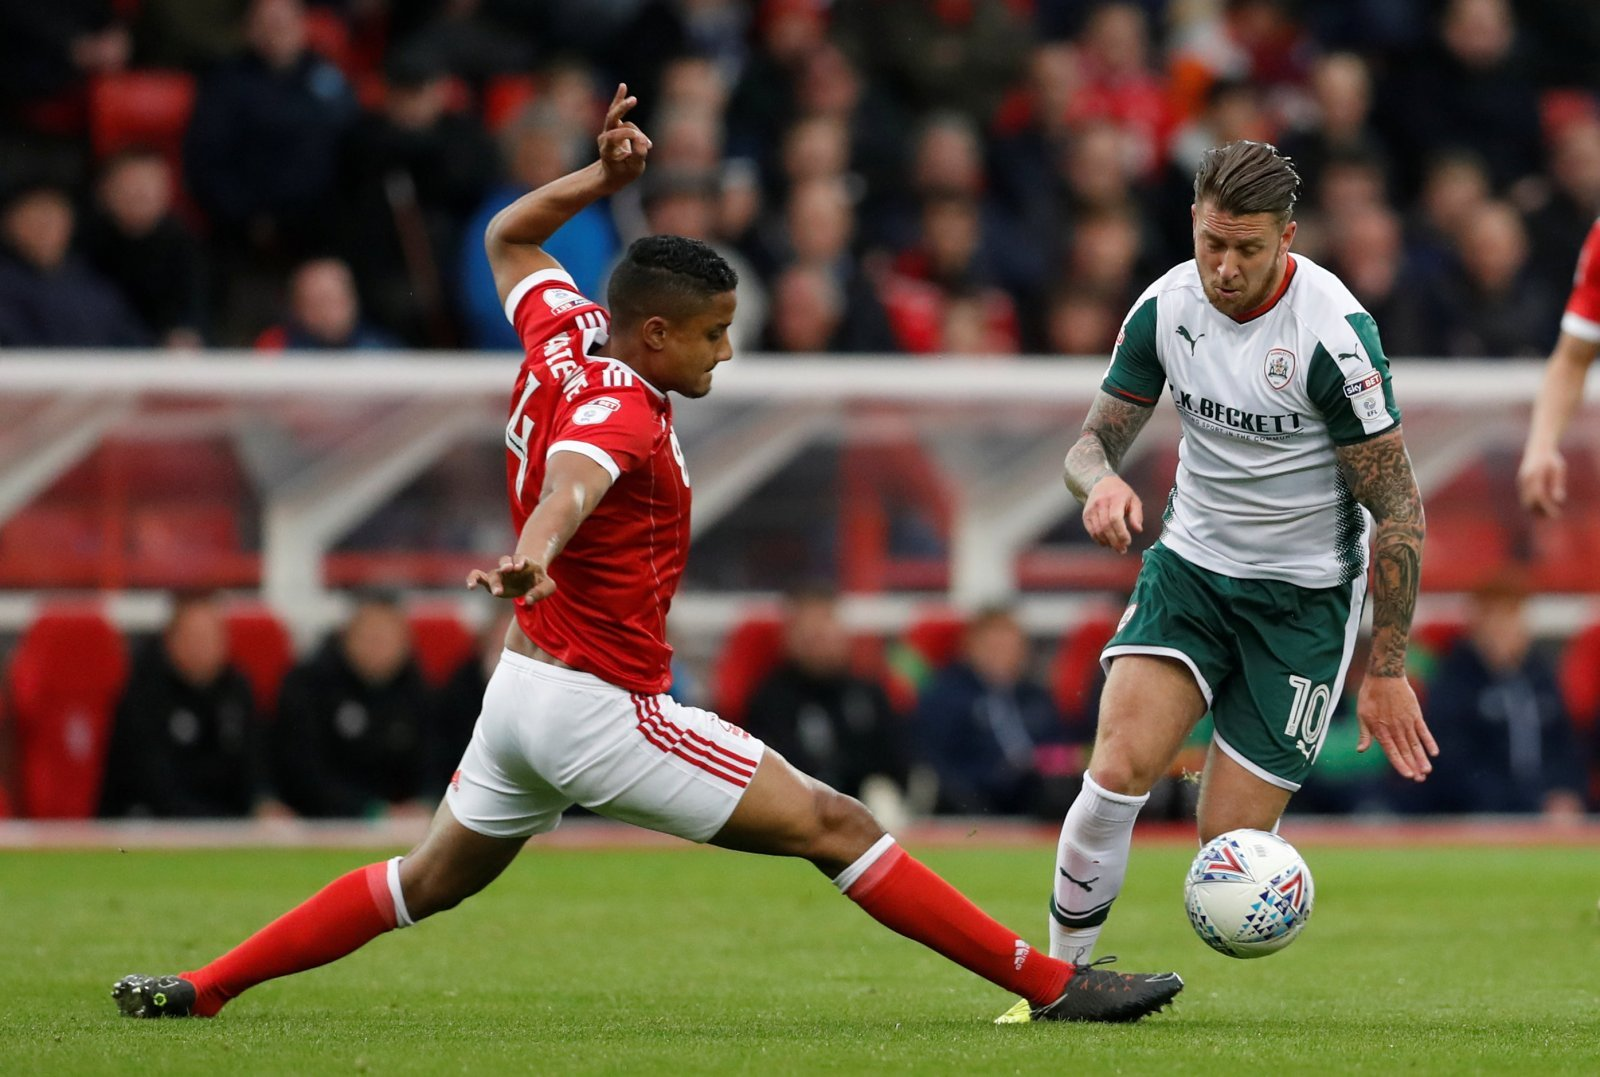 Nottingham Forest should hang on to Michael Mancienne despite Karanka rebuild